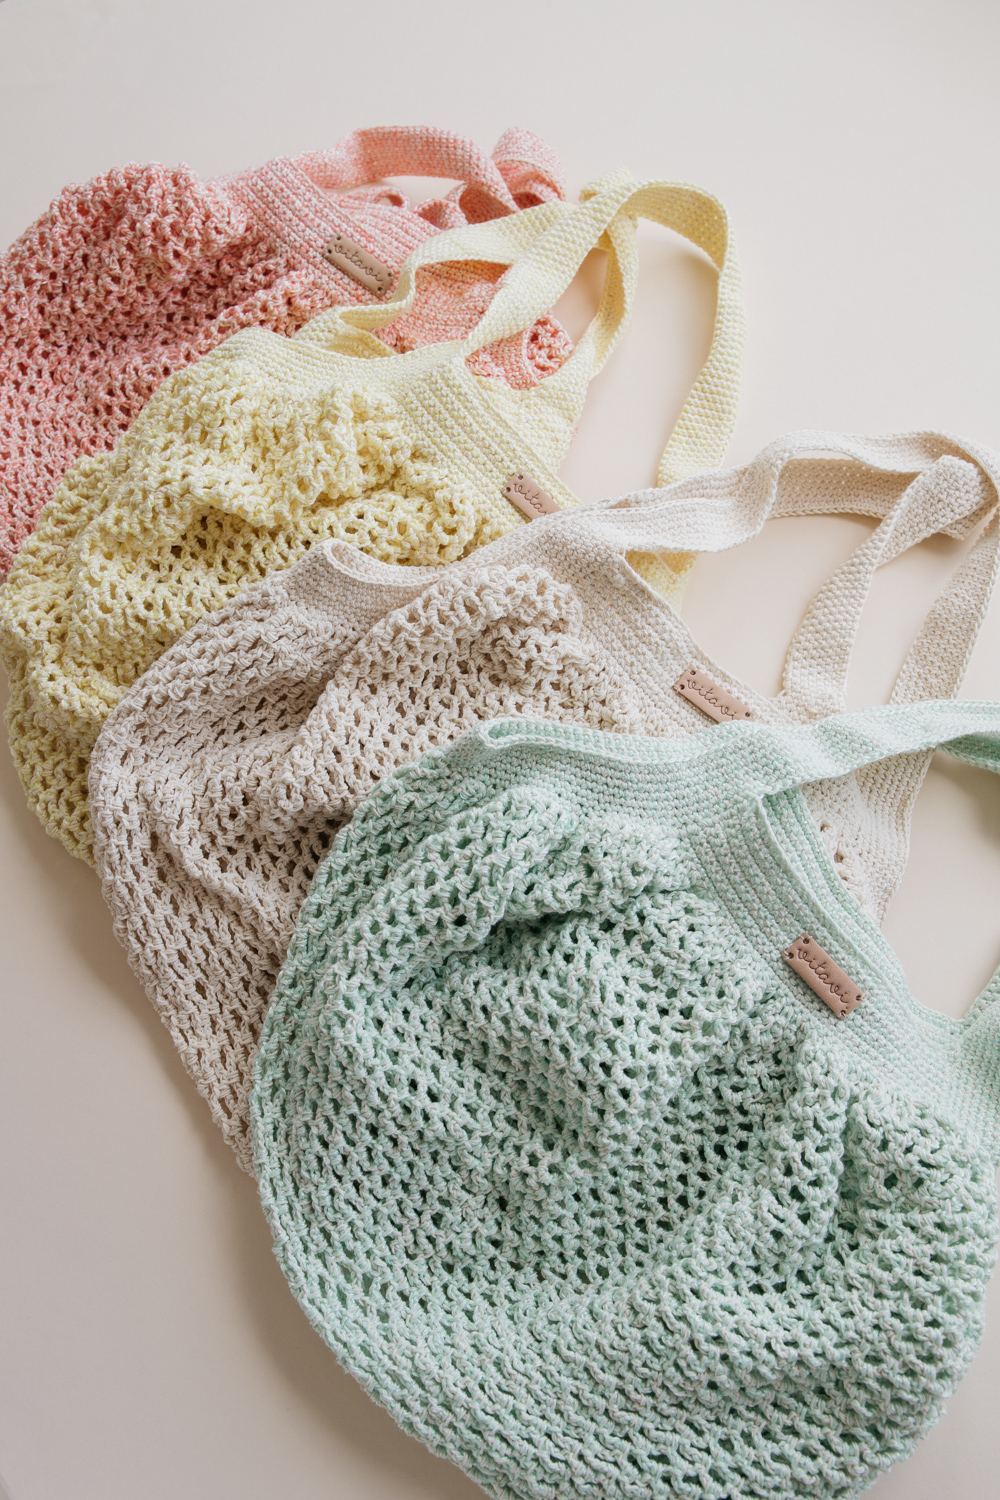 Crochet Net Bag